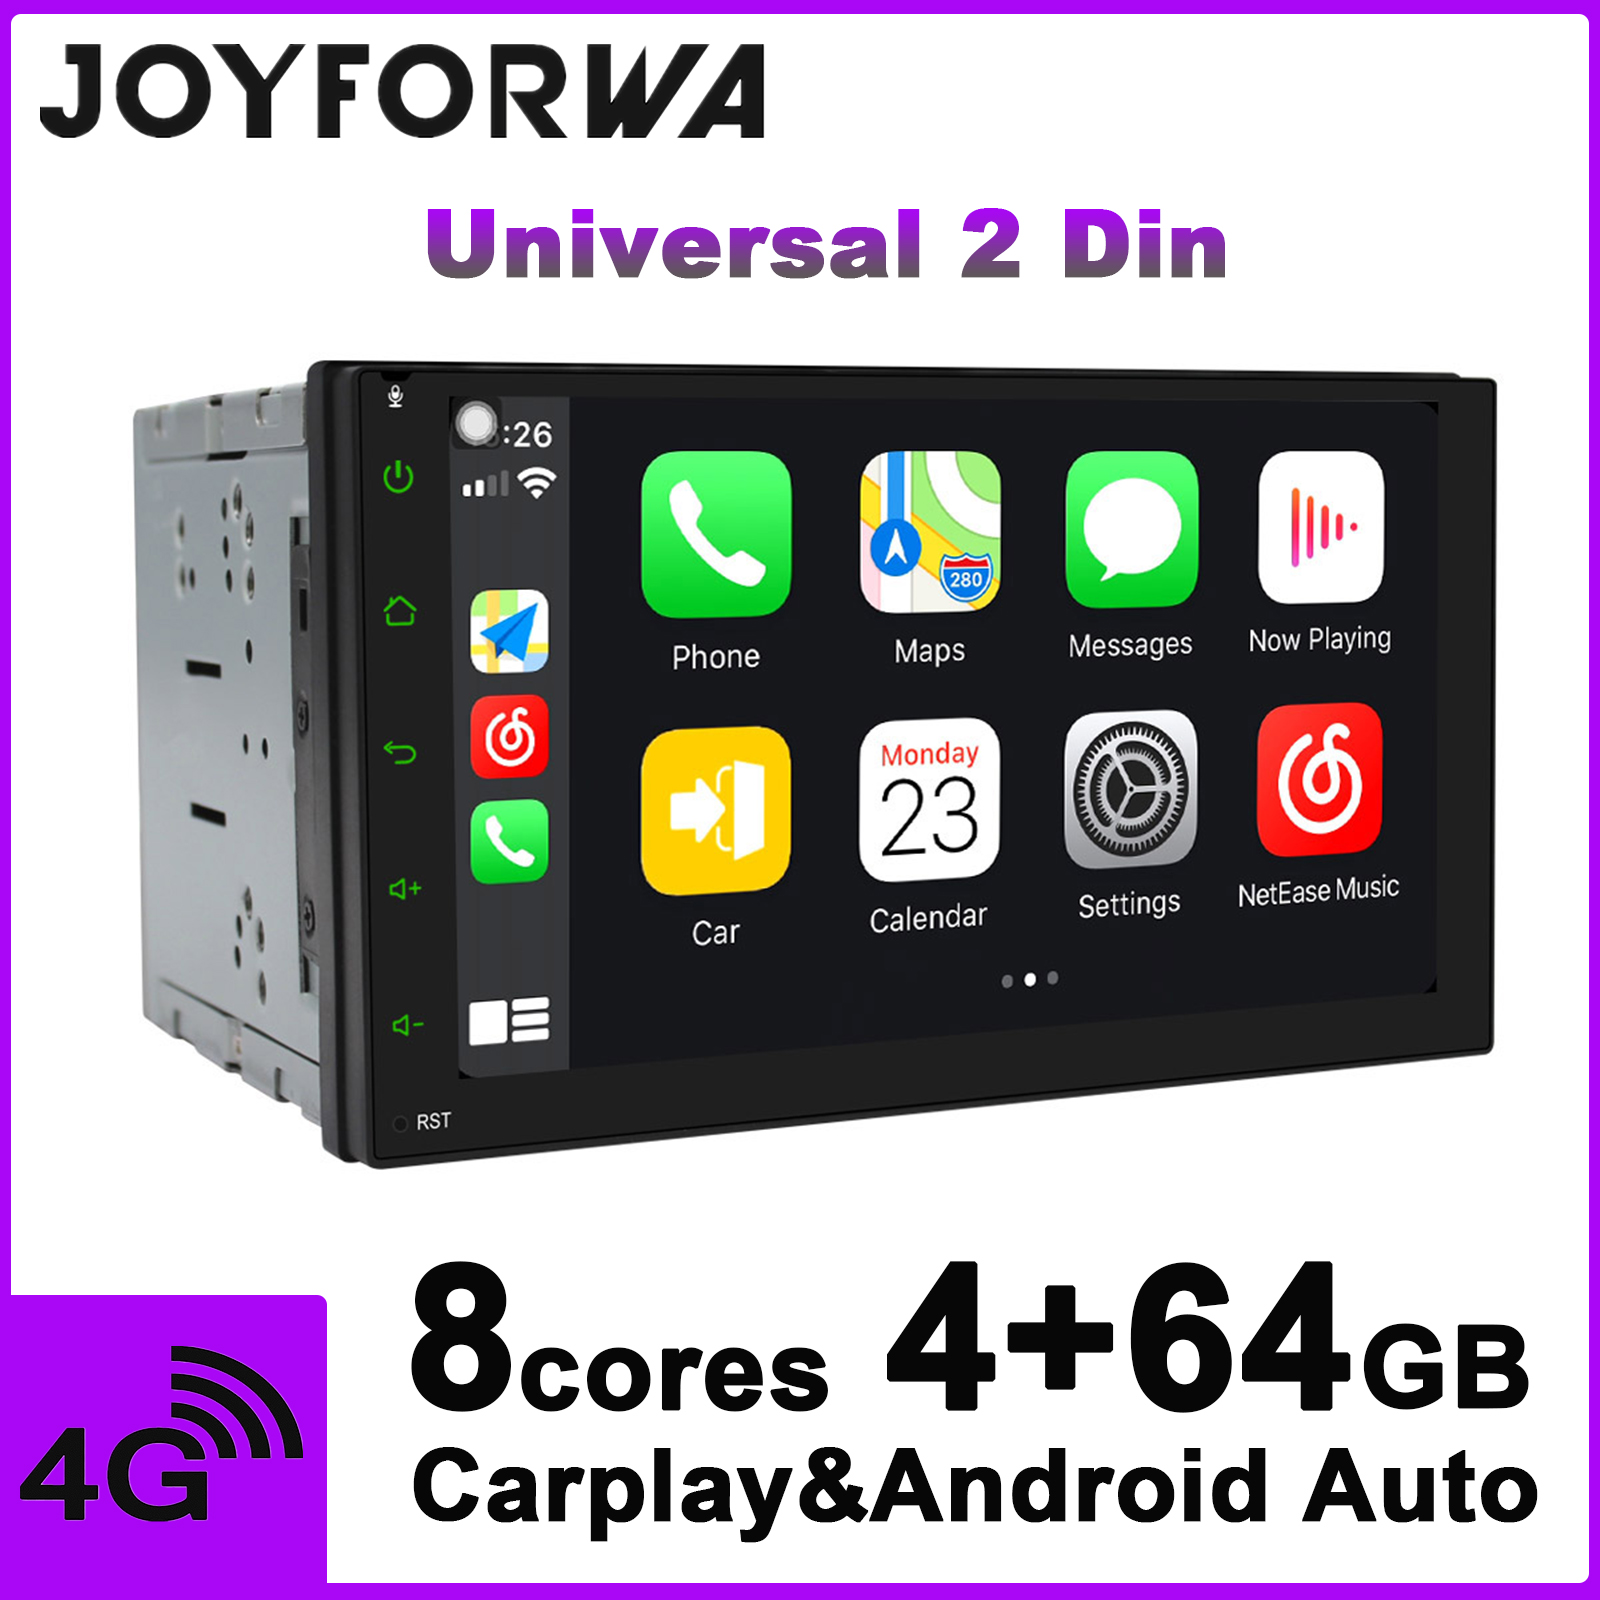 JOYFORWA Car Radio Android 8.1 4GB 64GB Octa Core 10.25 Inch Single DIN In-Dash Head Unit with Zlink and Android Auto